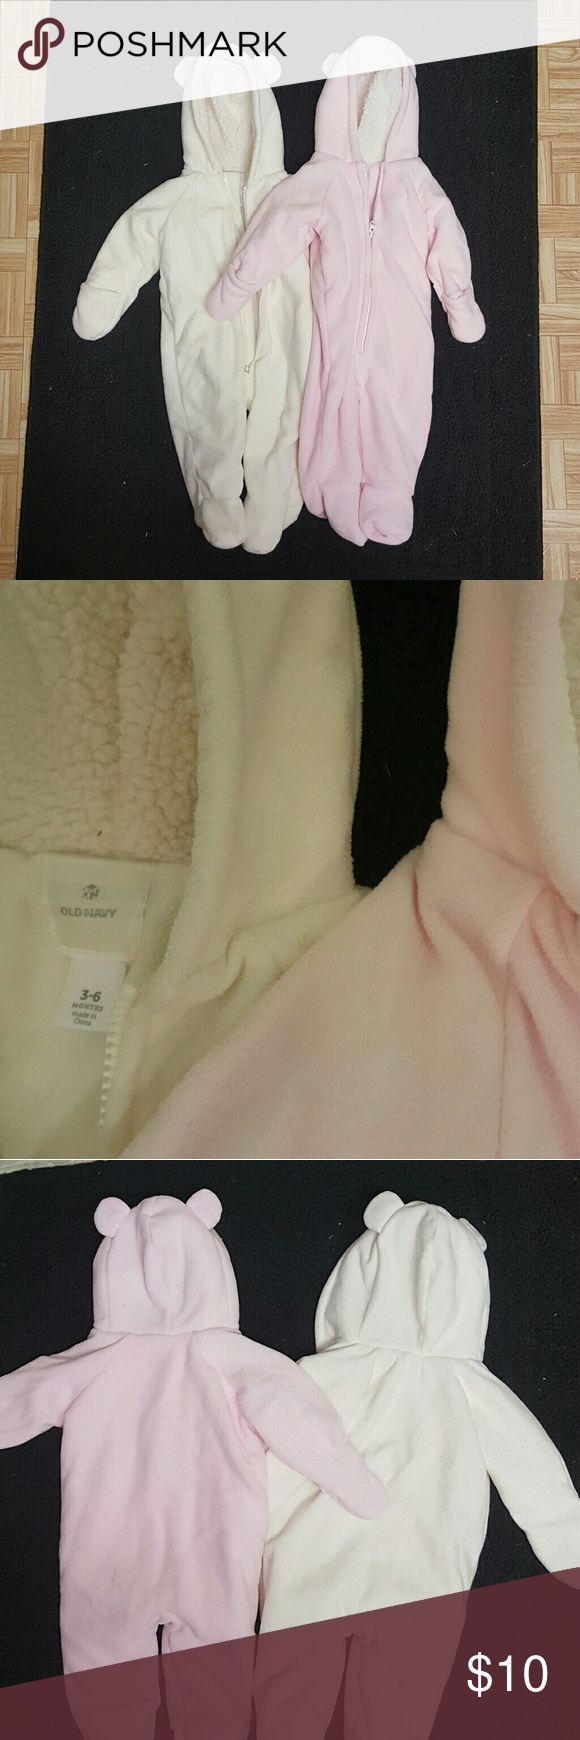 2 Old Navy 3-6month Fleece Winter Zipup Suits One white one pink. NWOT. Cozy fleece material! Old Navy Jackets & Coats